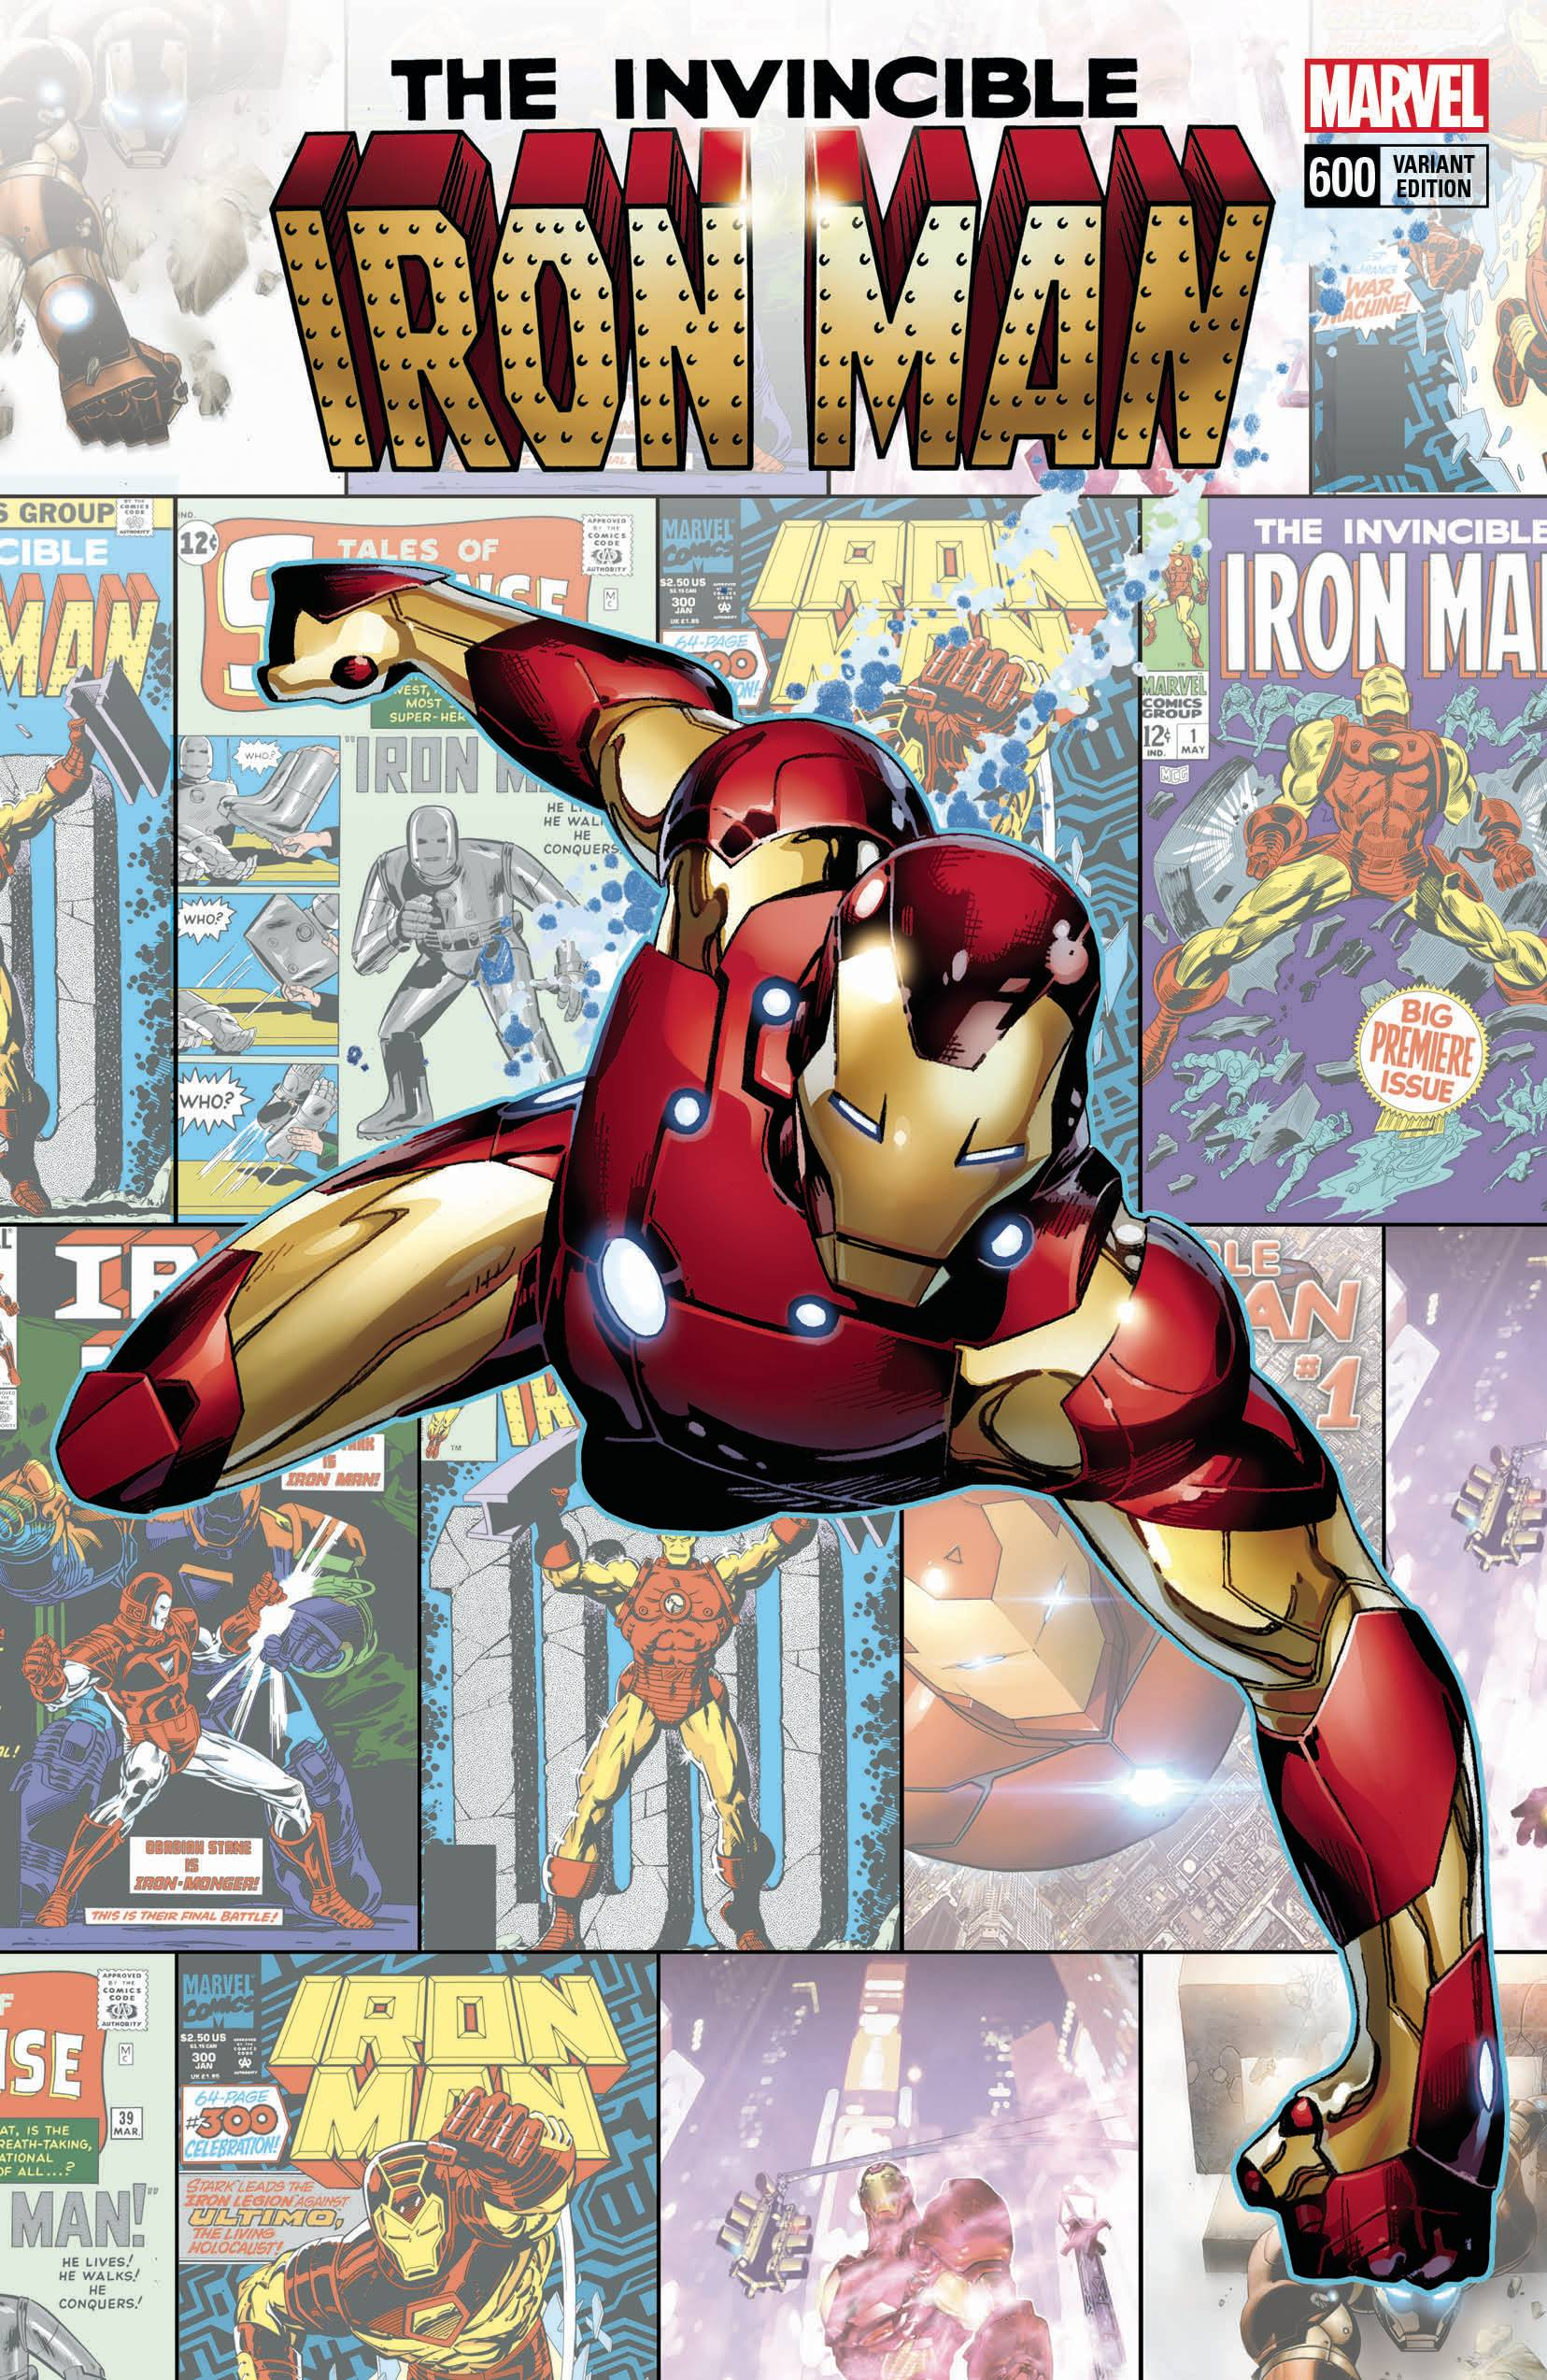 Invincible Iron Man 600 Coipel Variant Cover 1 In 25 Copies